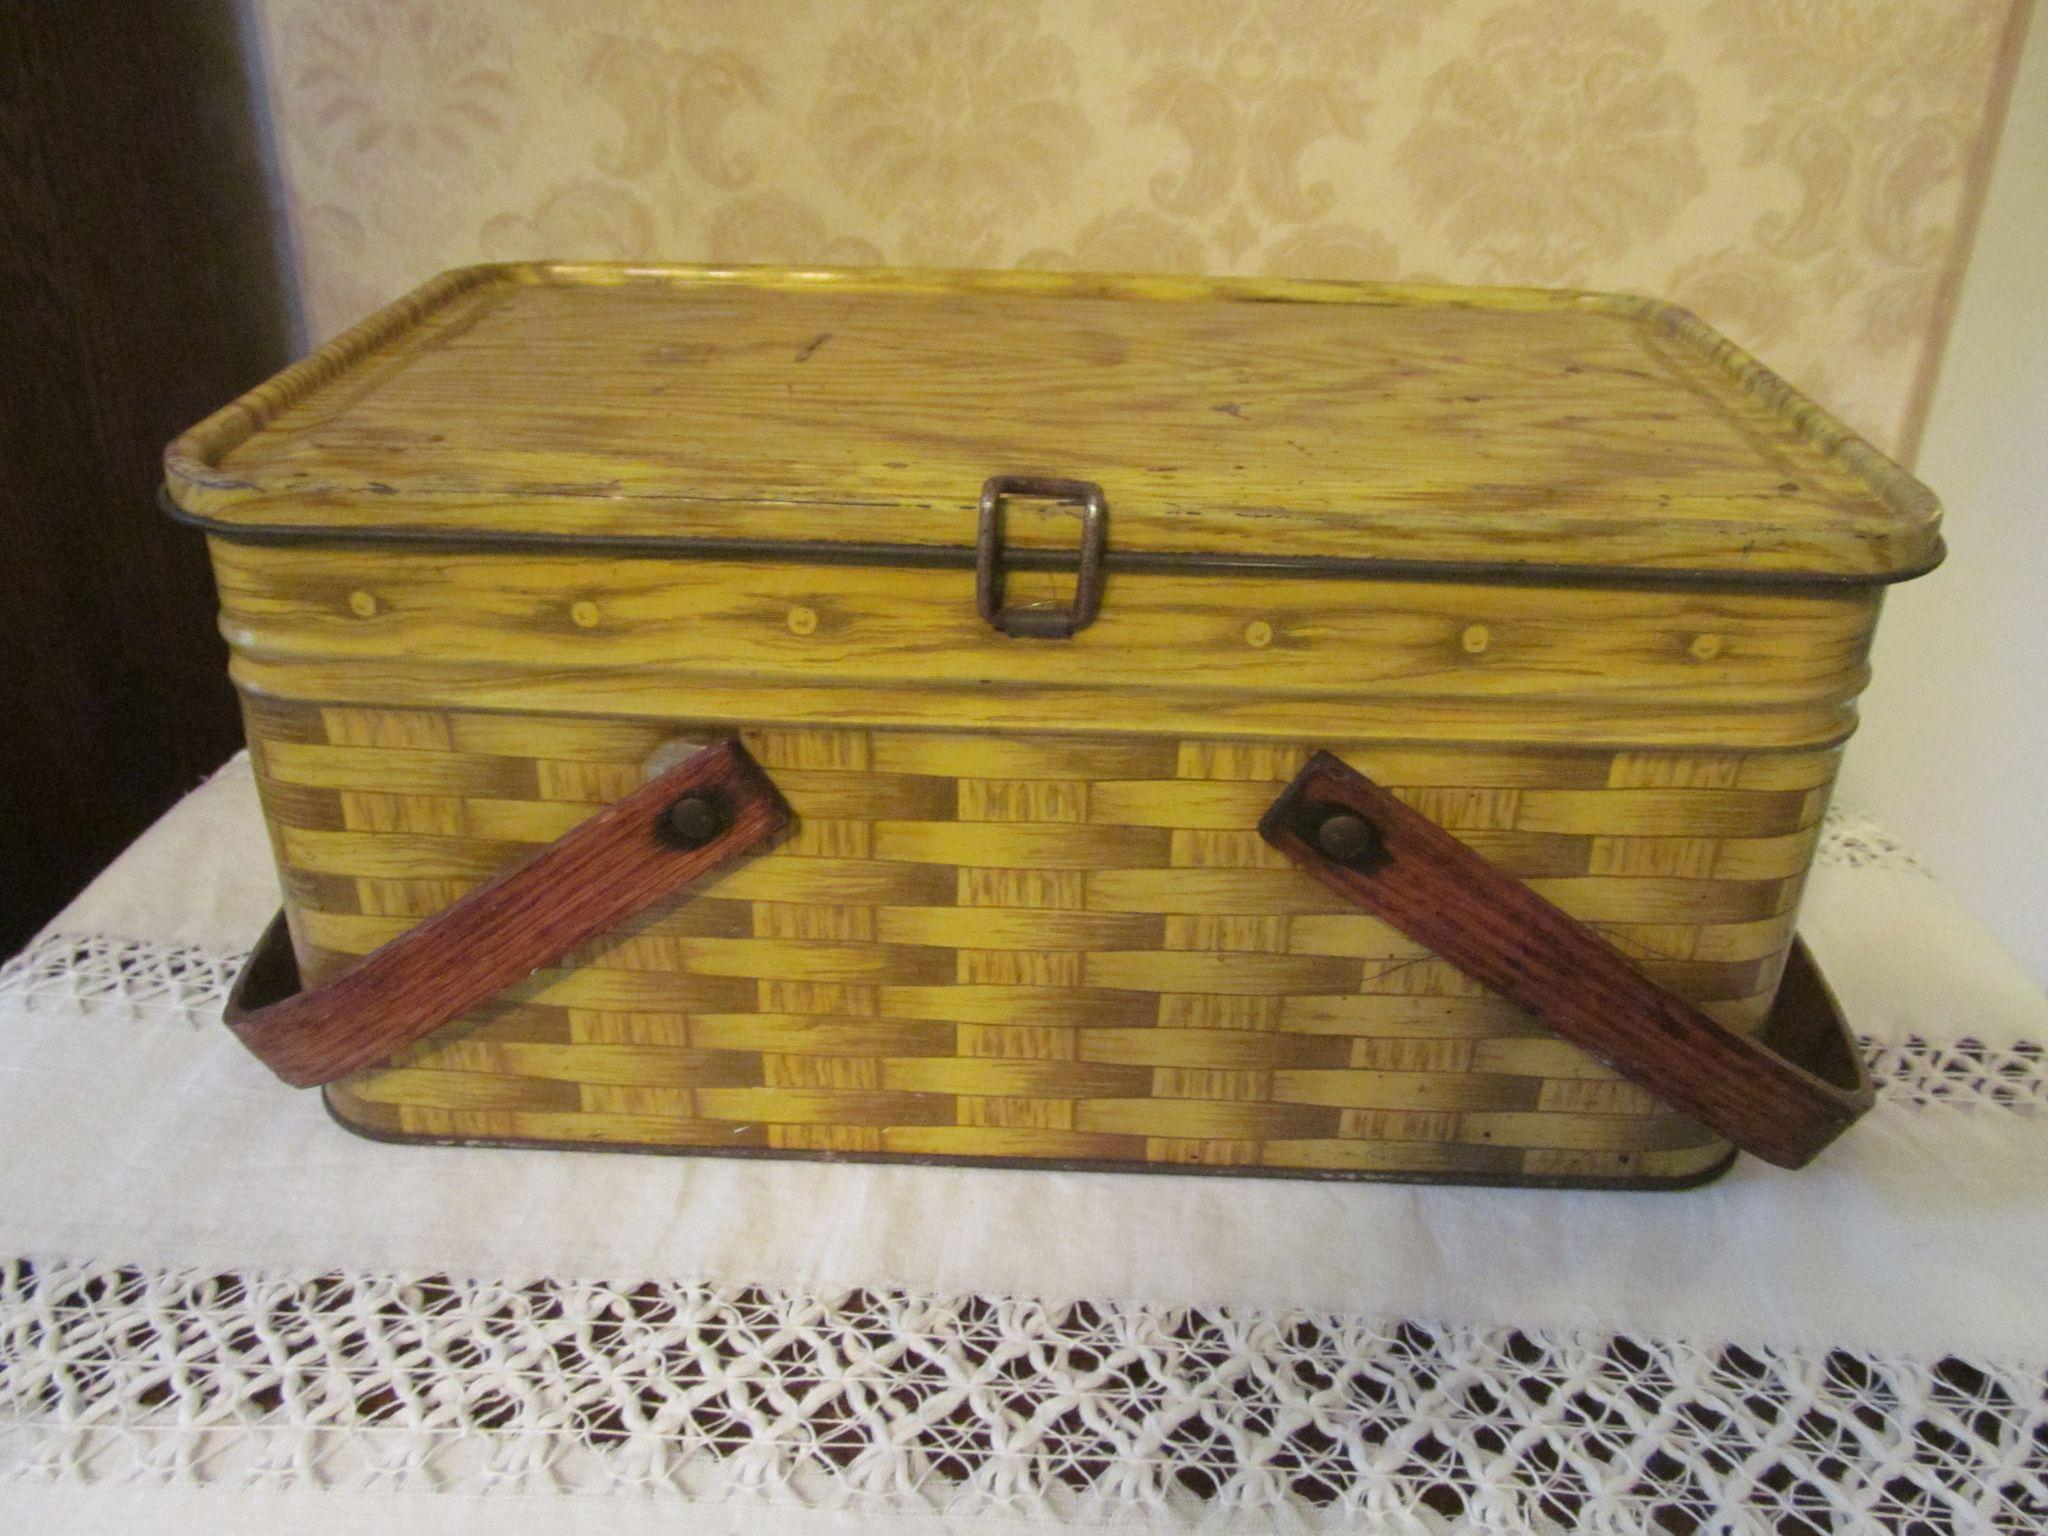 Metal Tin Basketweave Picnic Basket, Wood Handles